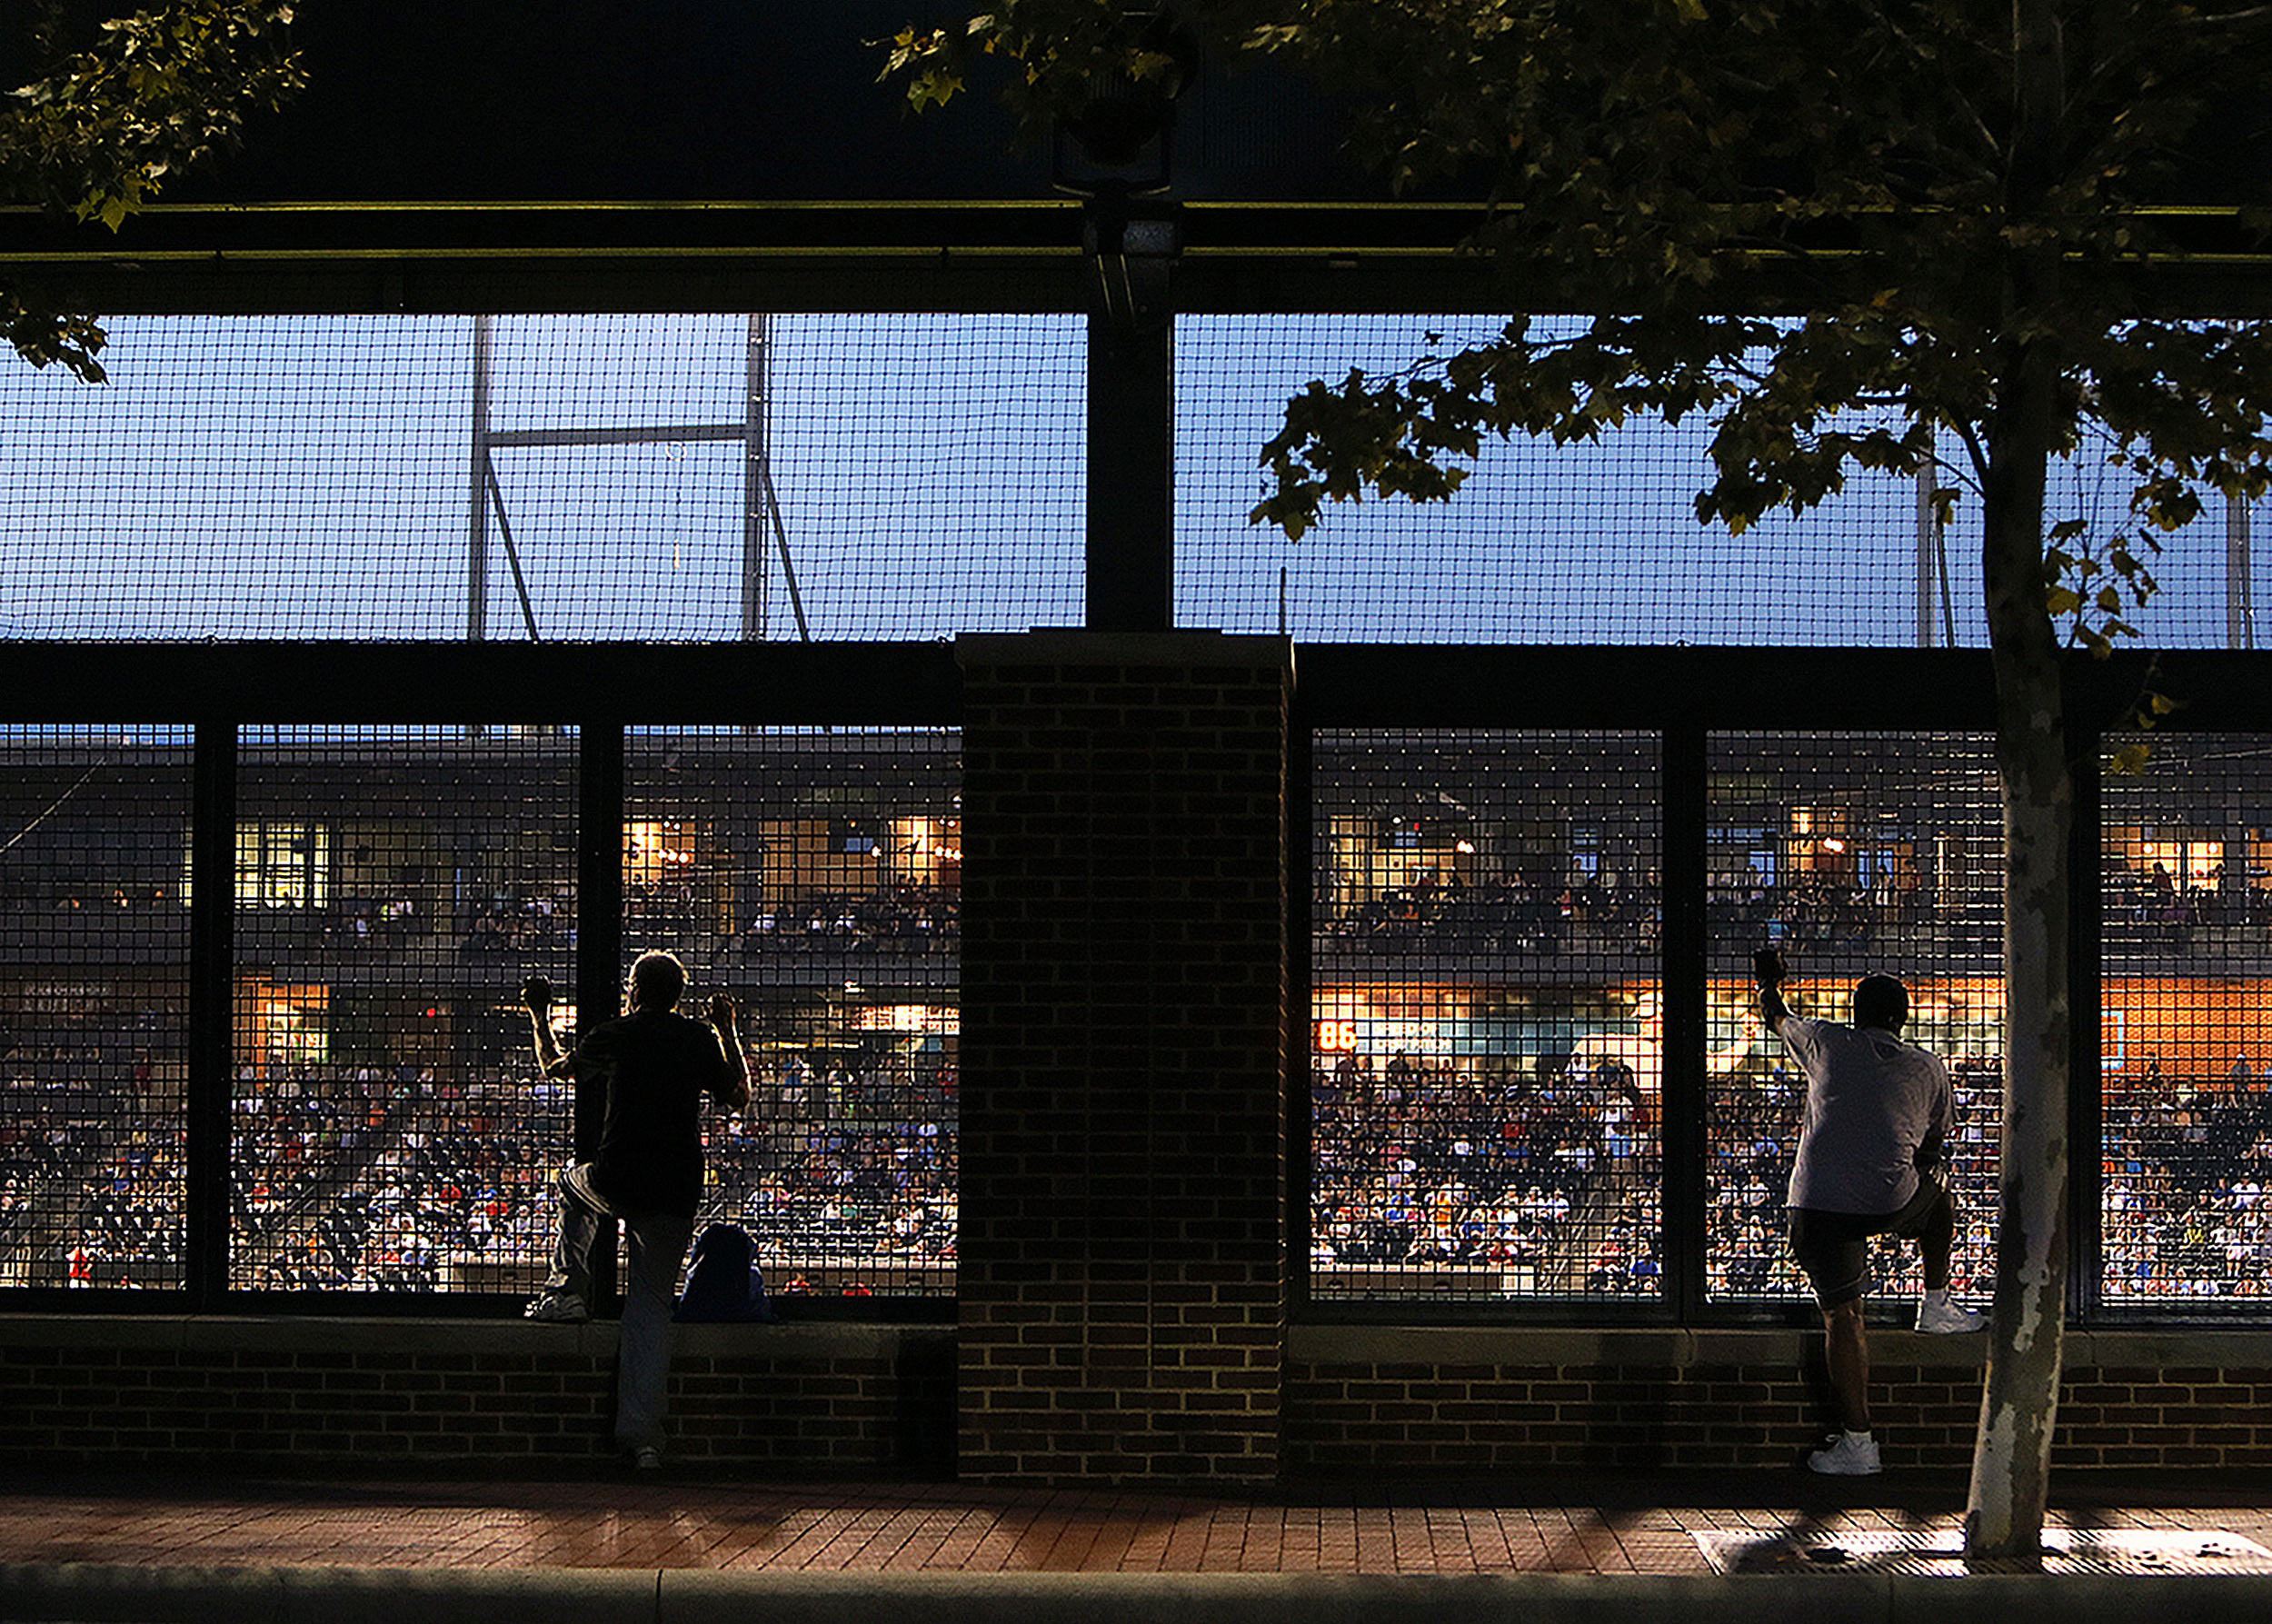 A few fans passing by watch from the street as the Columbus Clippers take on the Indianapolis Indians at Huntington Park in Columbus, Ohio, Monday, August 25, 2014.